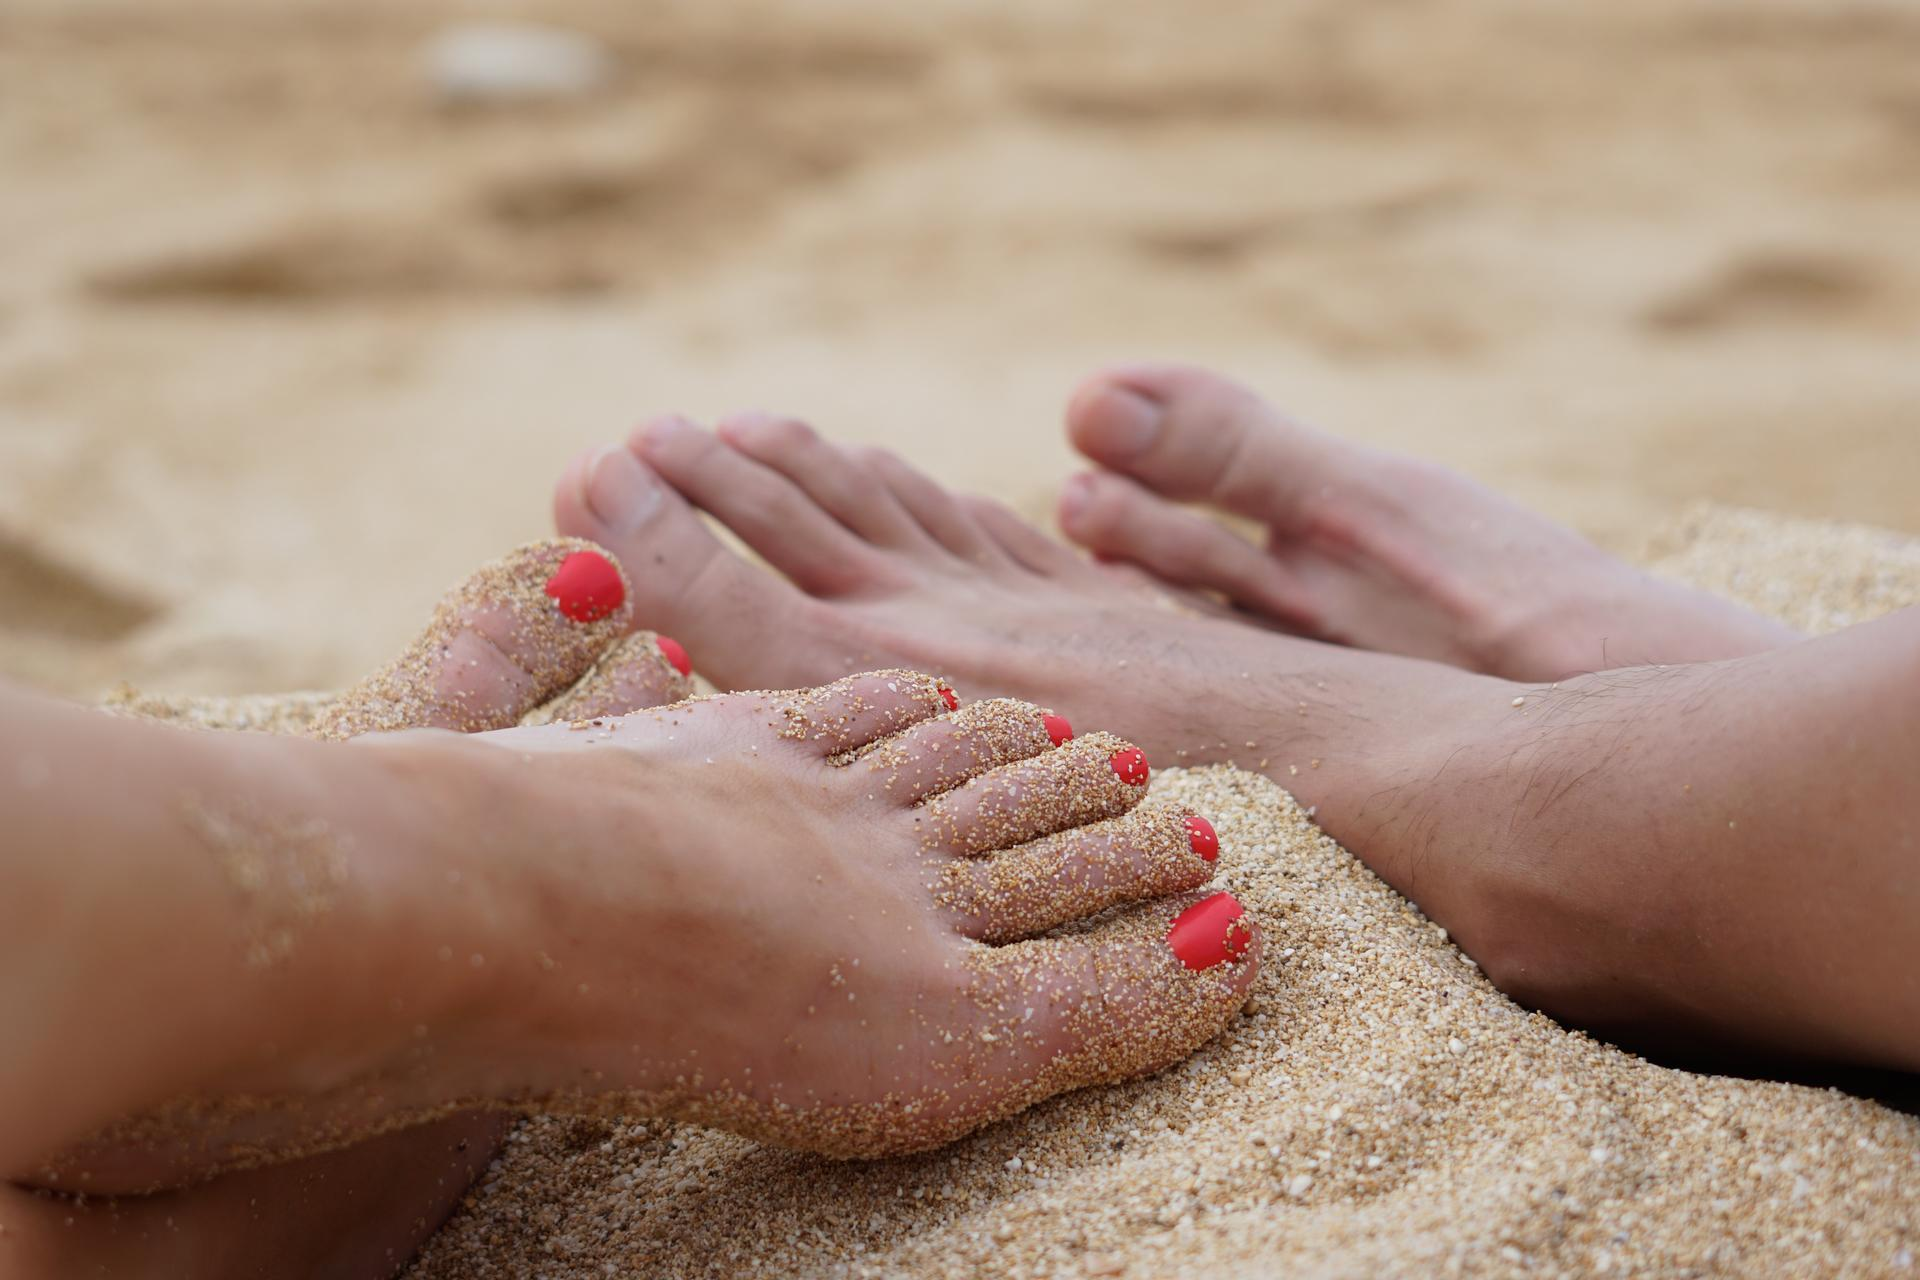 Man and woman's feet in the sand